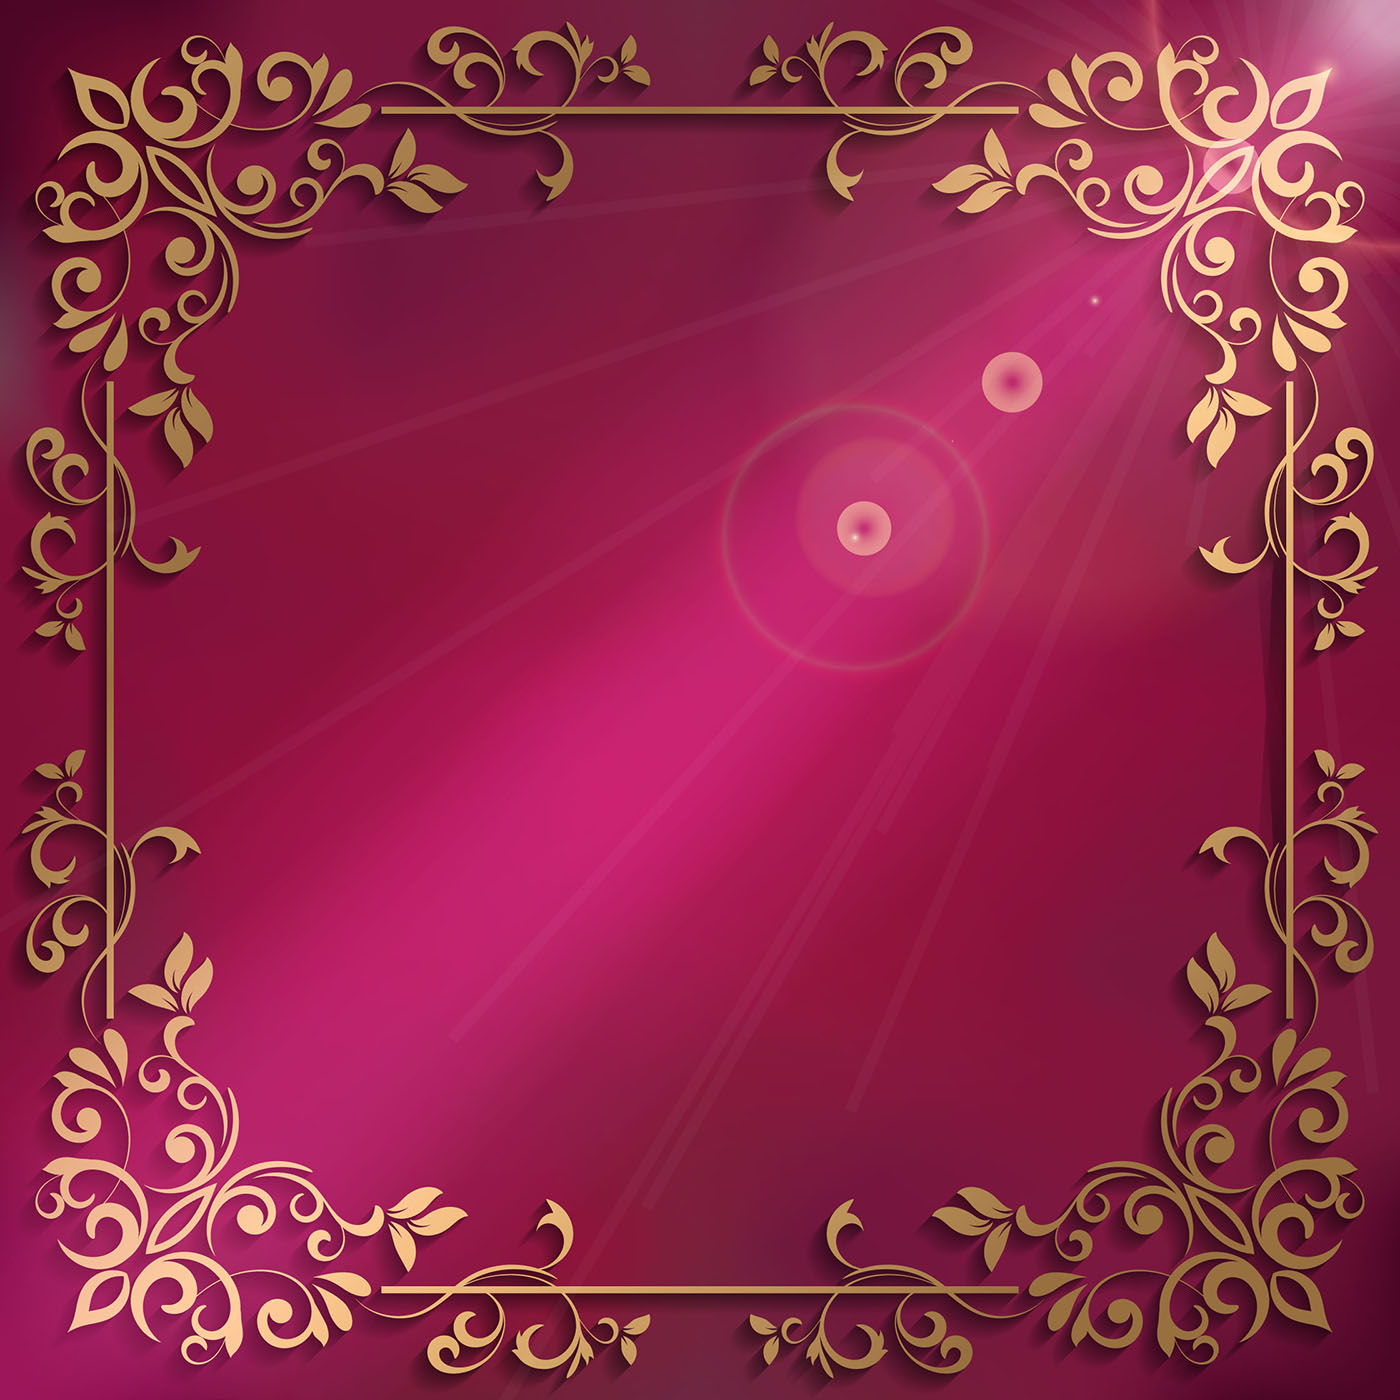 Elegant Background With Decorative Frame Download Free